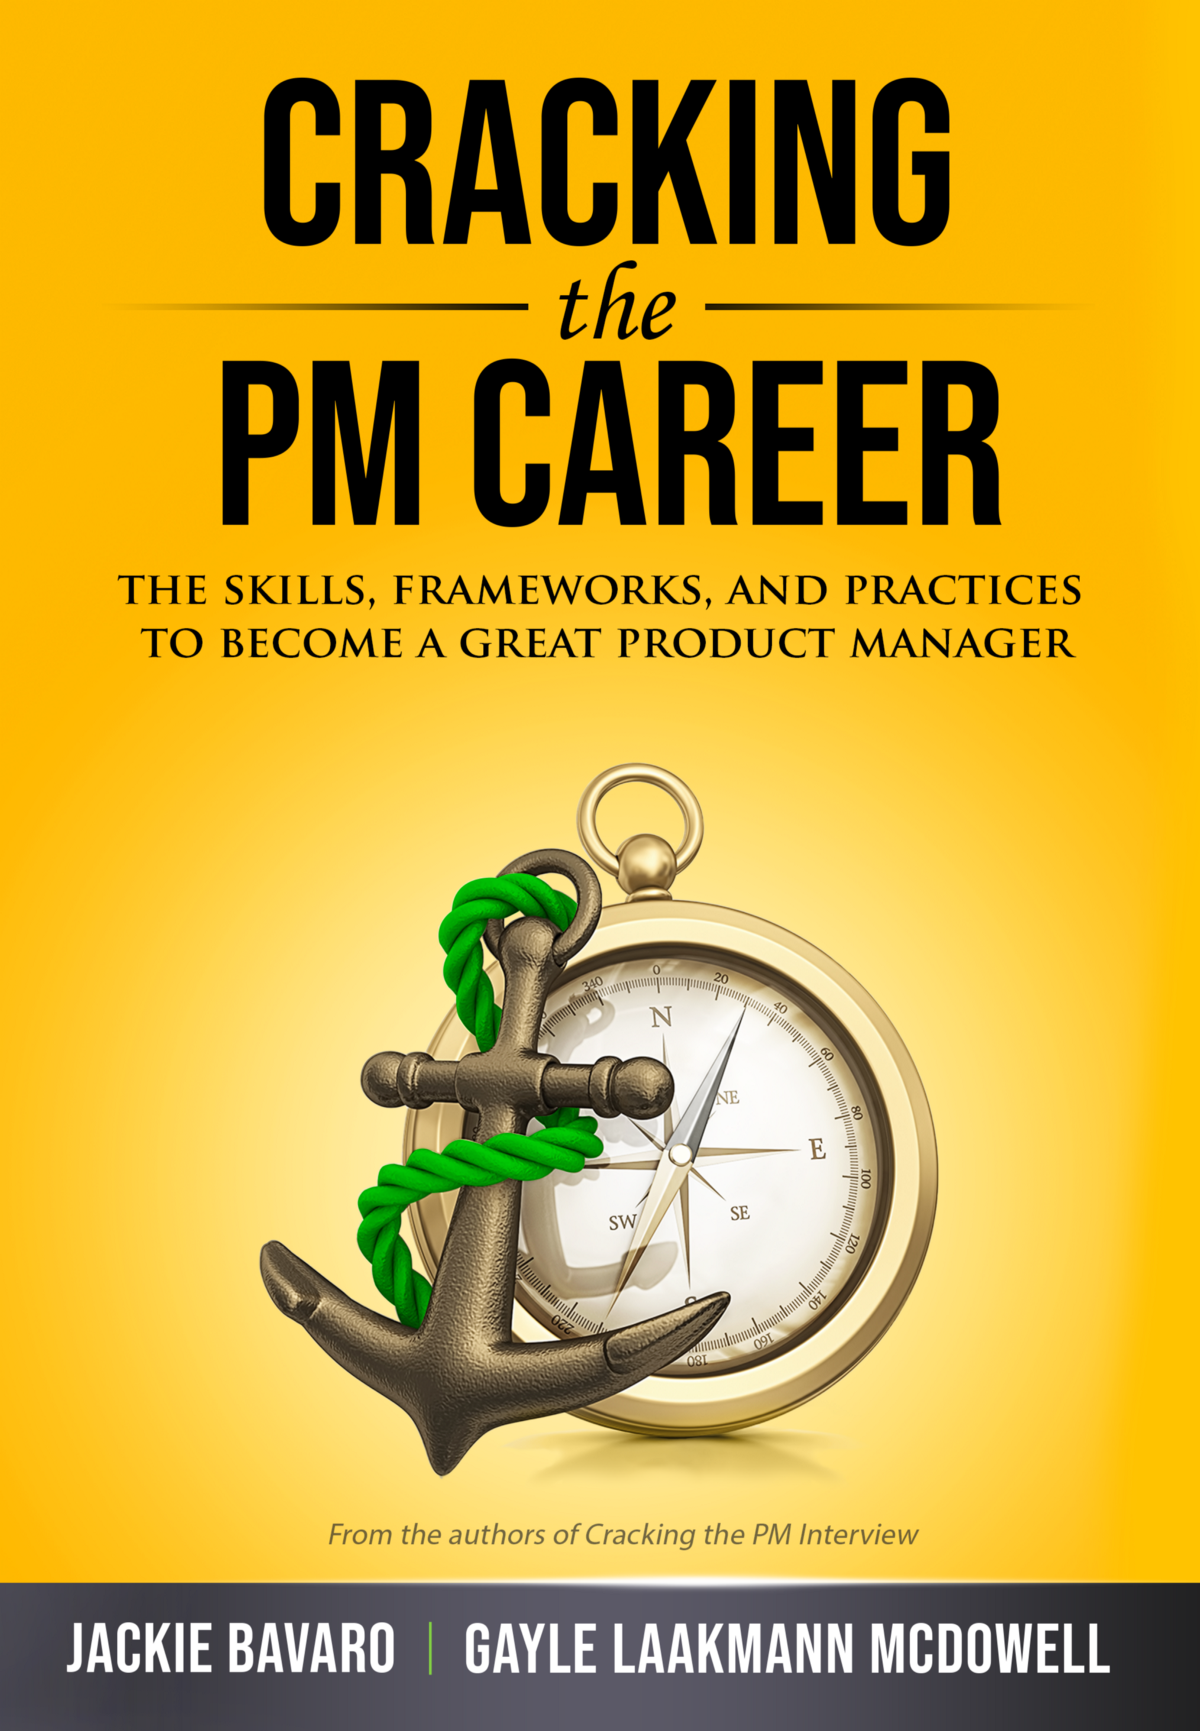 Cracking the PM Career is available for pre-order | by Jackie Bavaro |  Medium